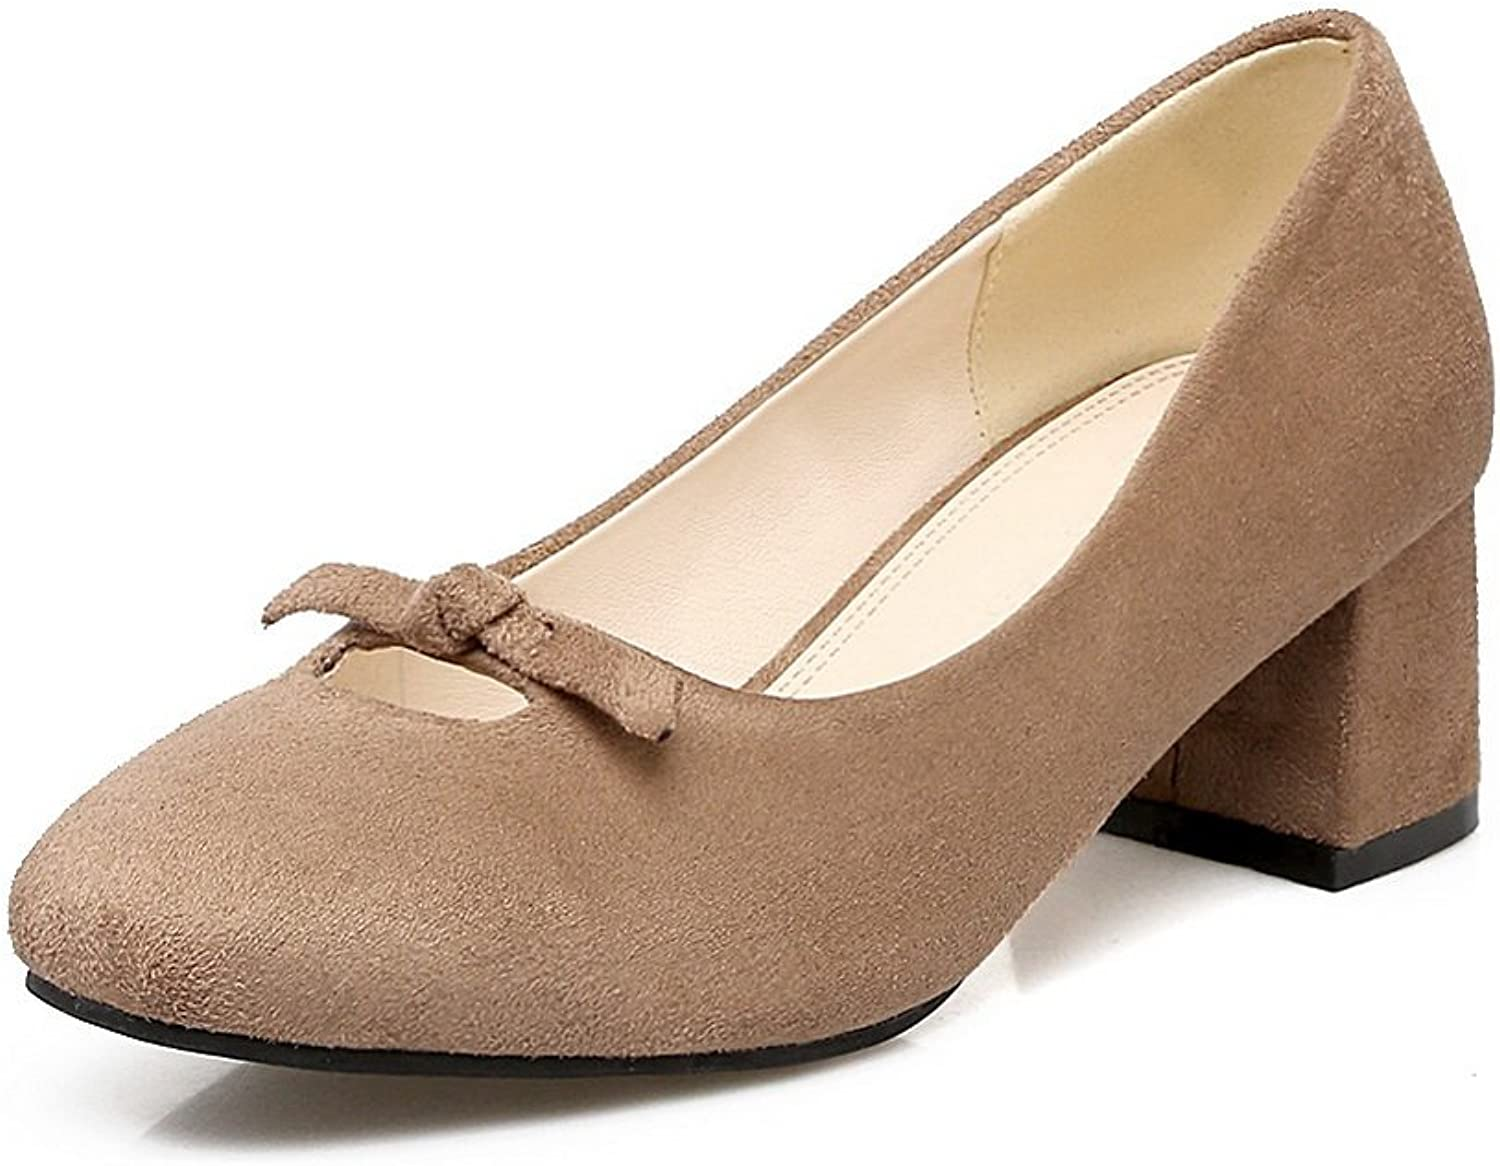 BalaMasa Womens Square-Toe Chunky Heels Low-Cut Uppers Suede Pumps shoes